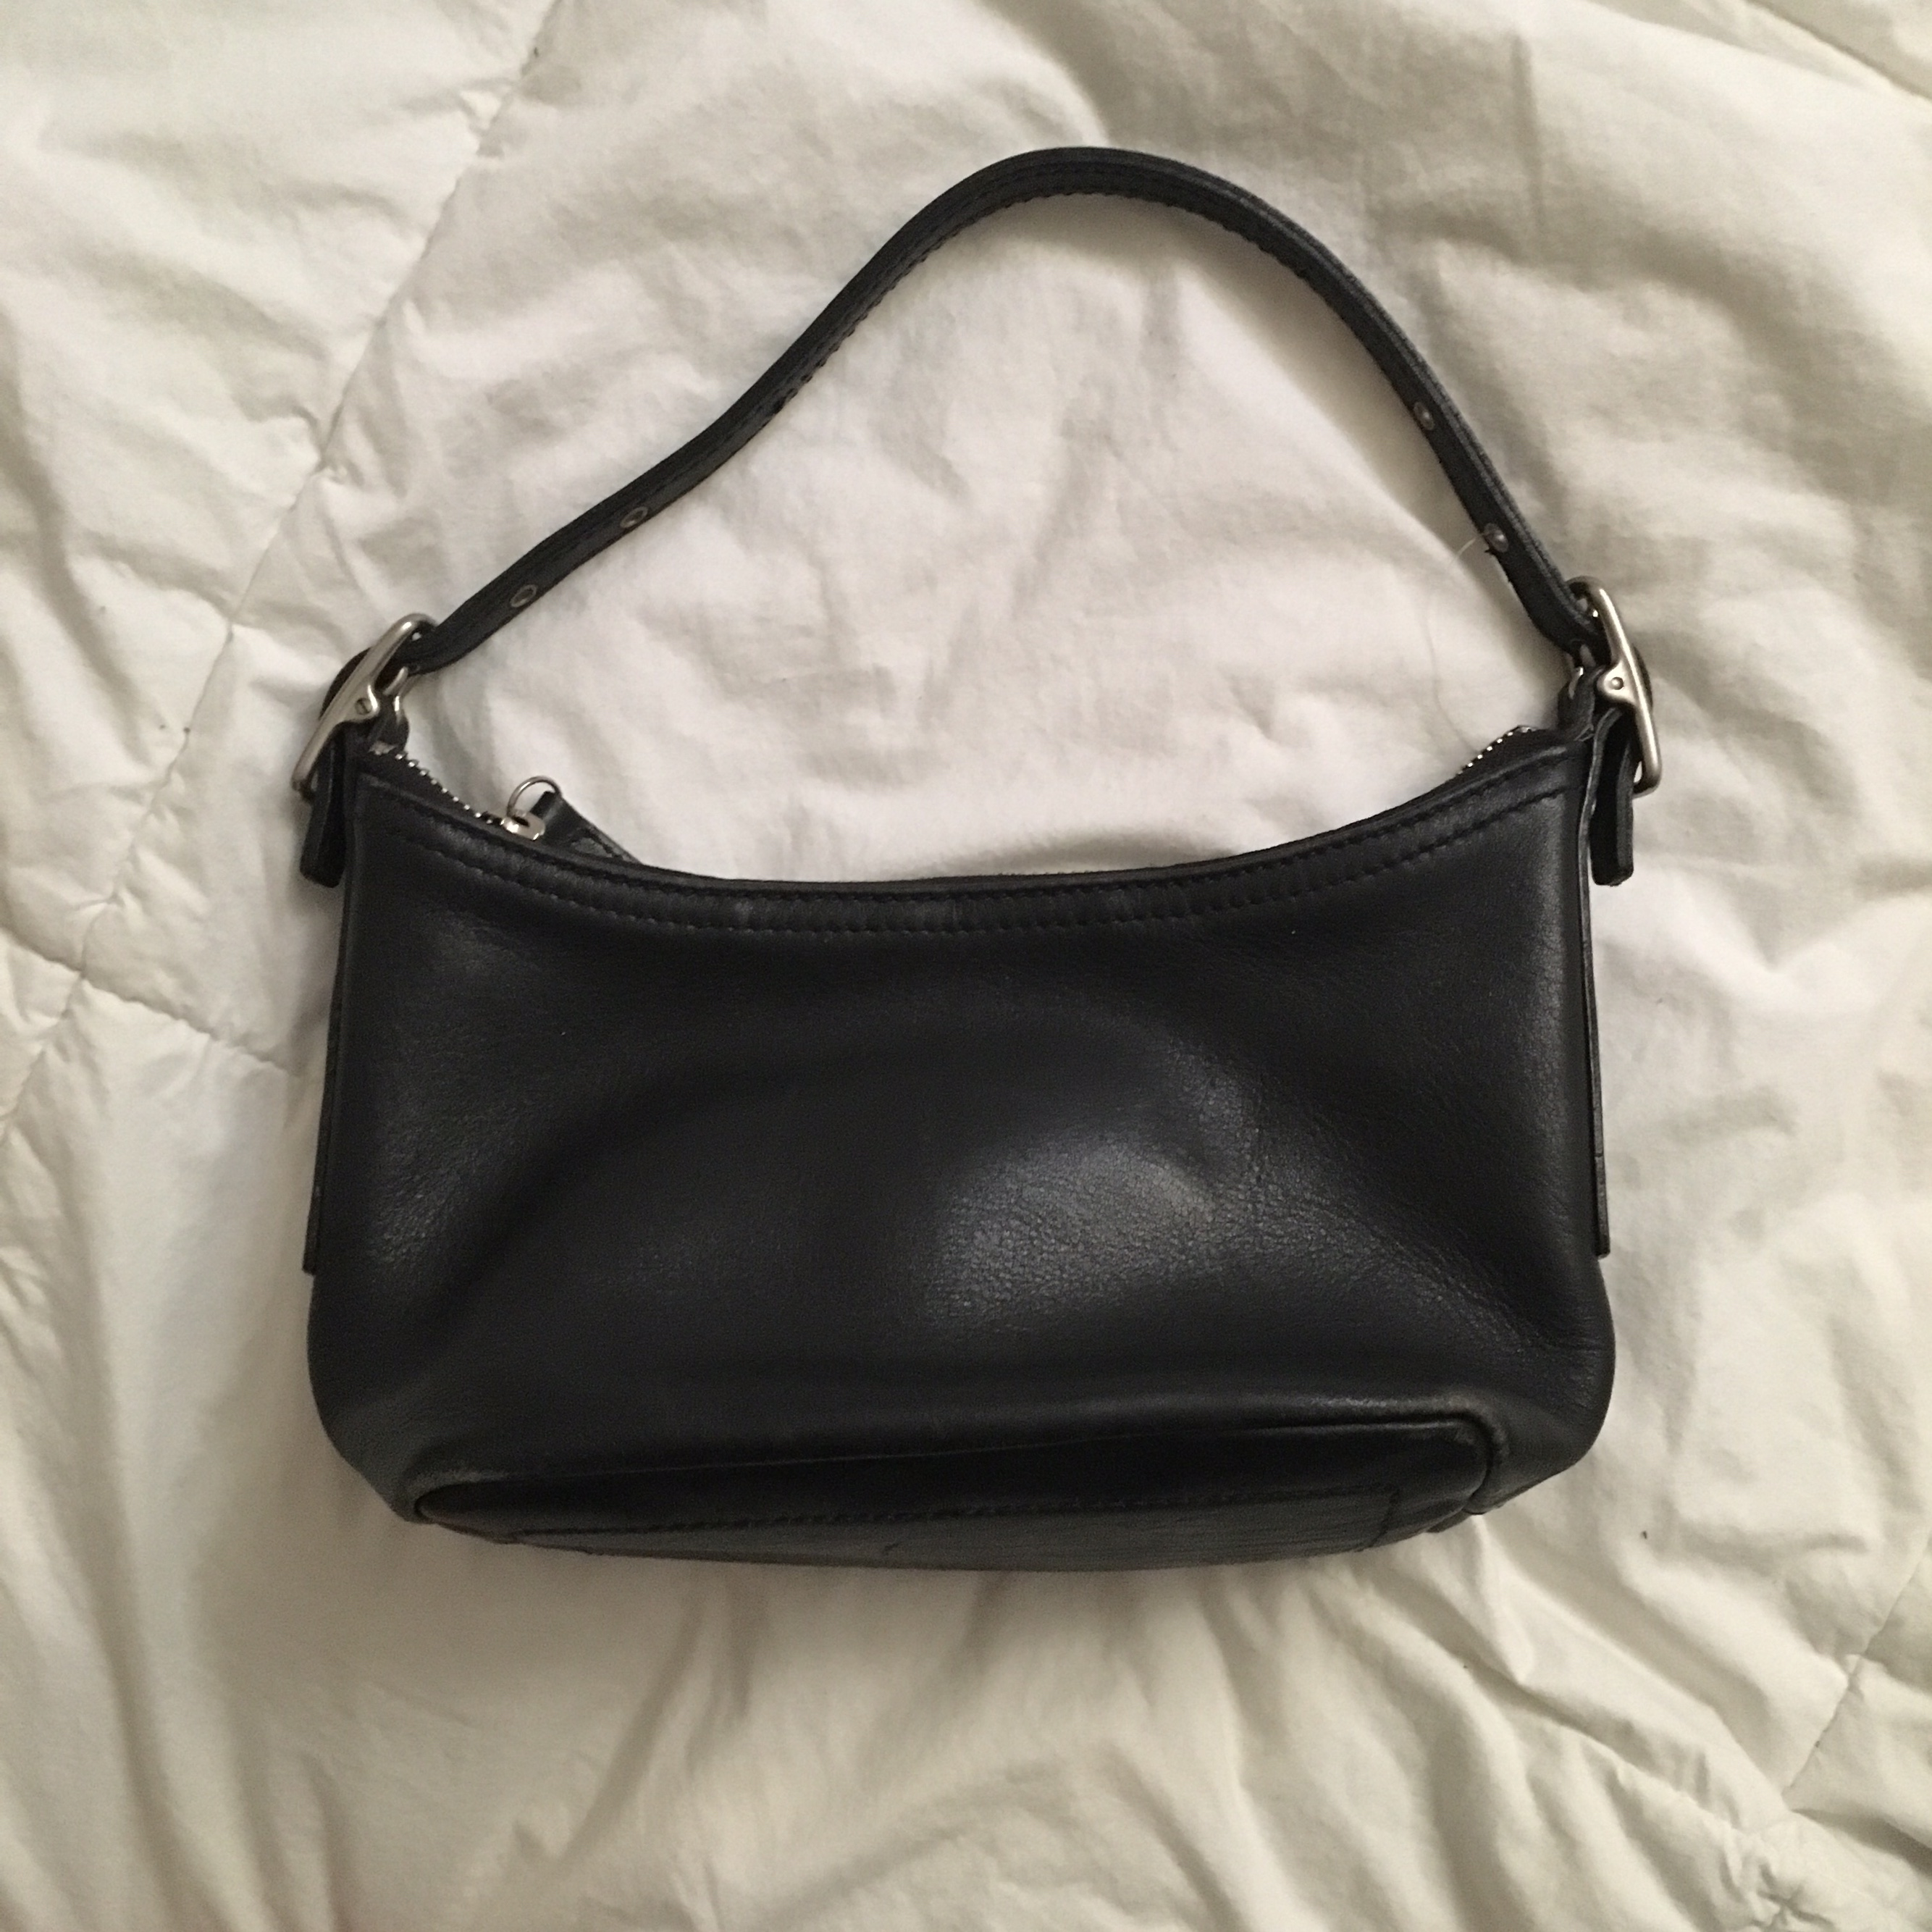 4a7467f2 Small Black Leather Coach Purse - Best Image Home In Ccdbb.Org